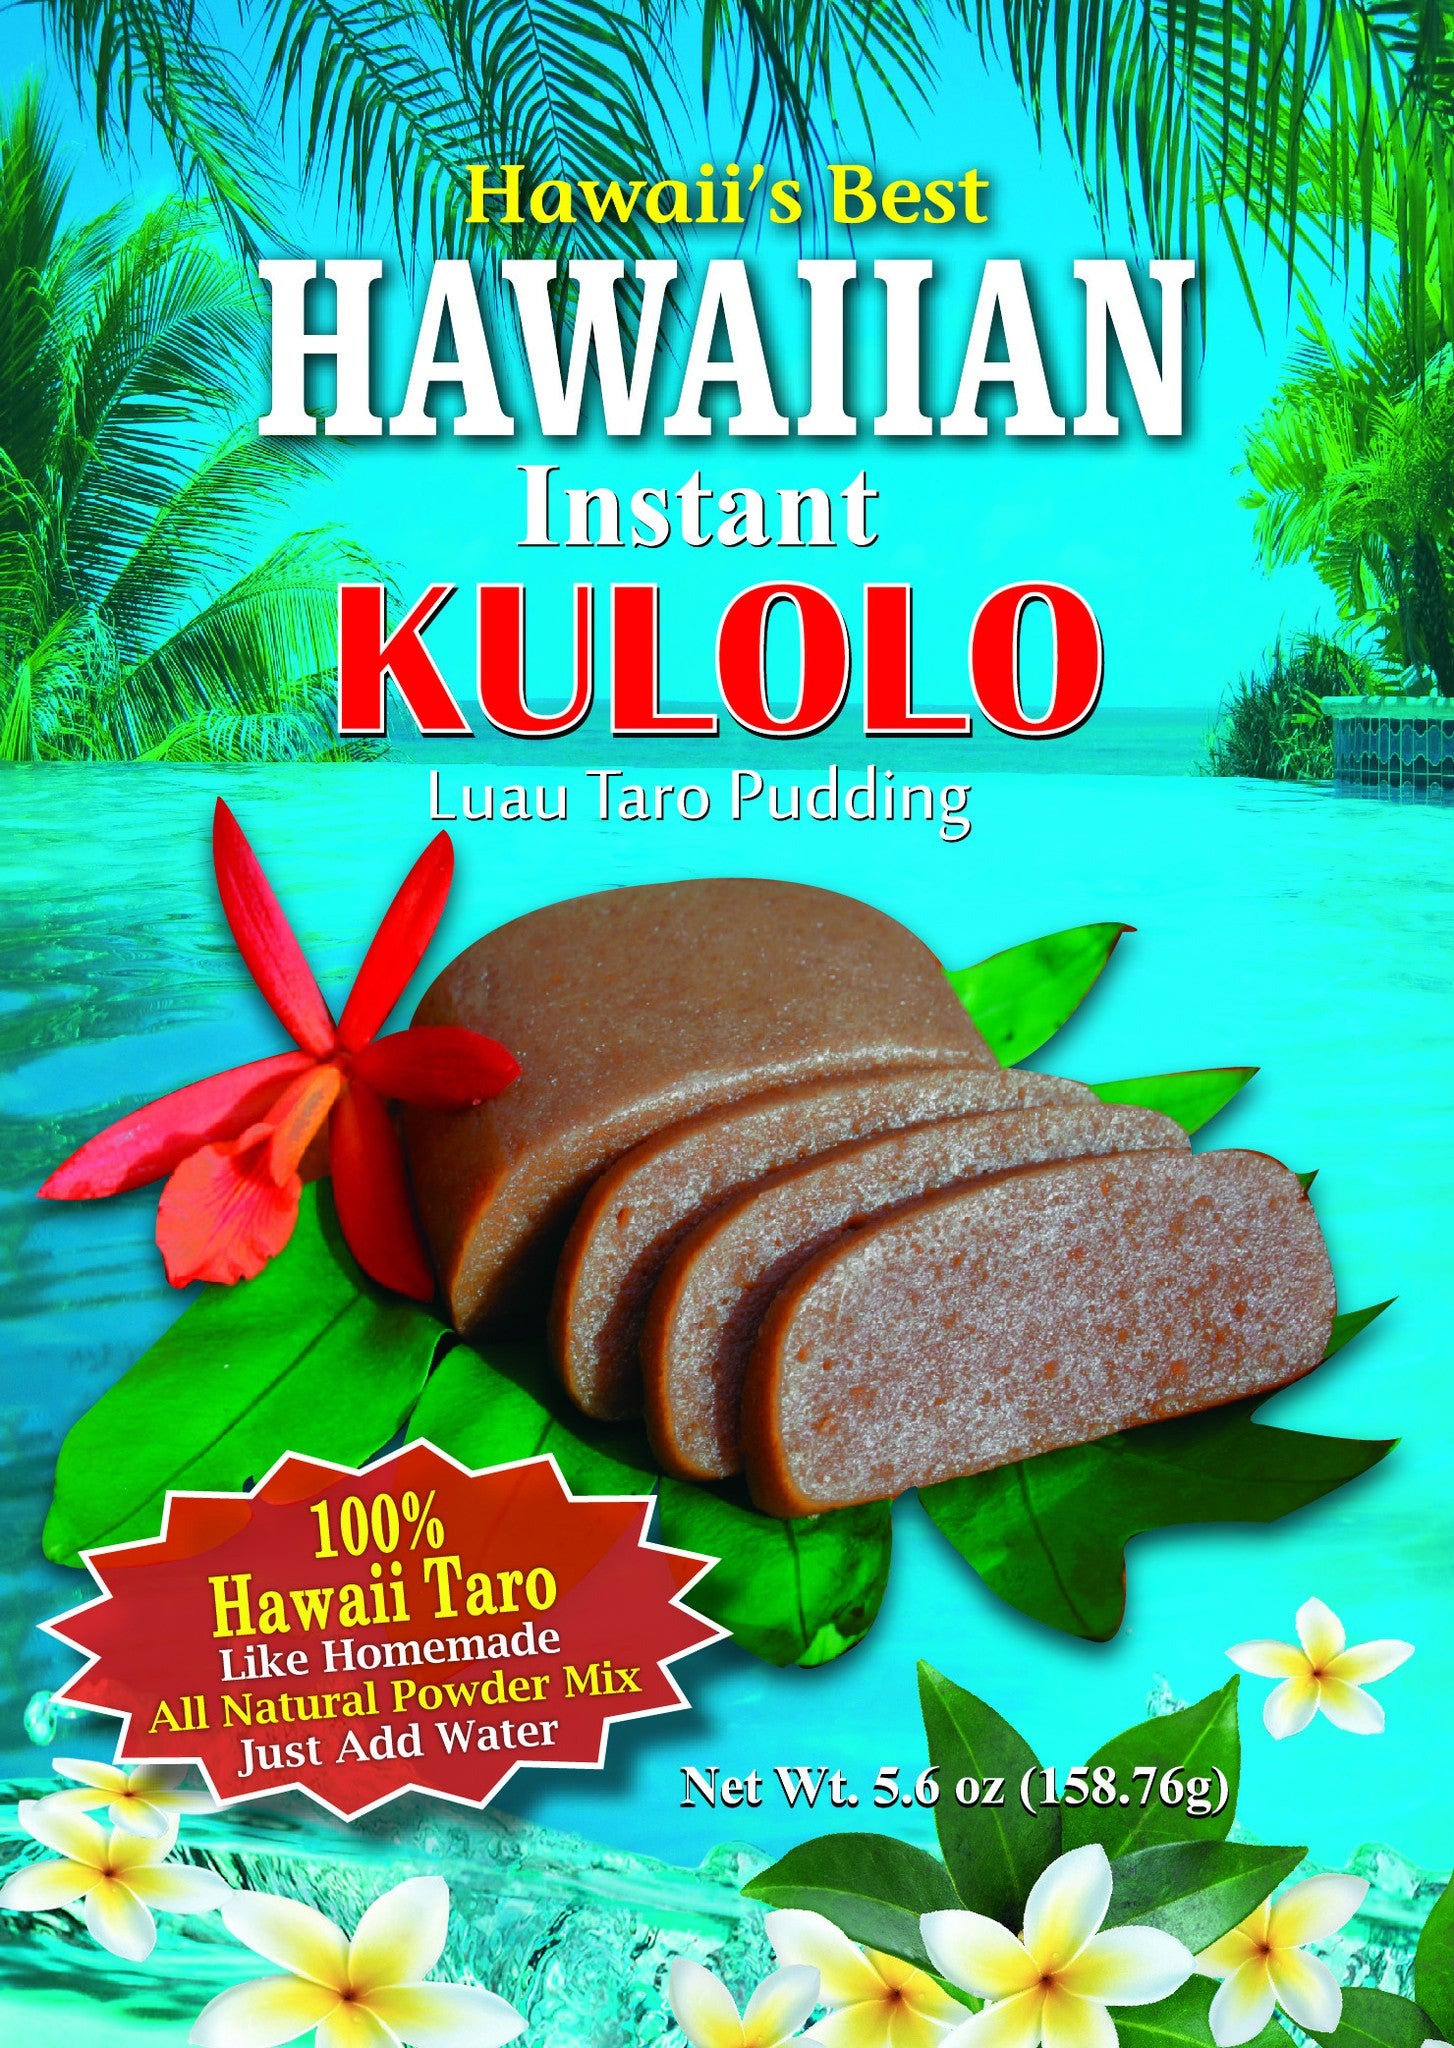 Free Shipping! (10 BAGS - EXTRA VALUE PACK, $5.49 EACH) HAWAIIAN KULOLO MIX (Taro Pudding).